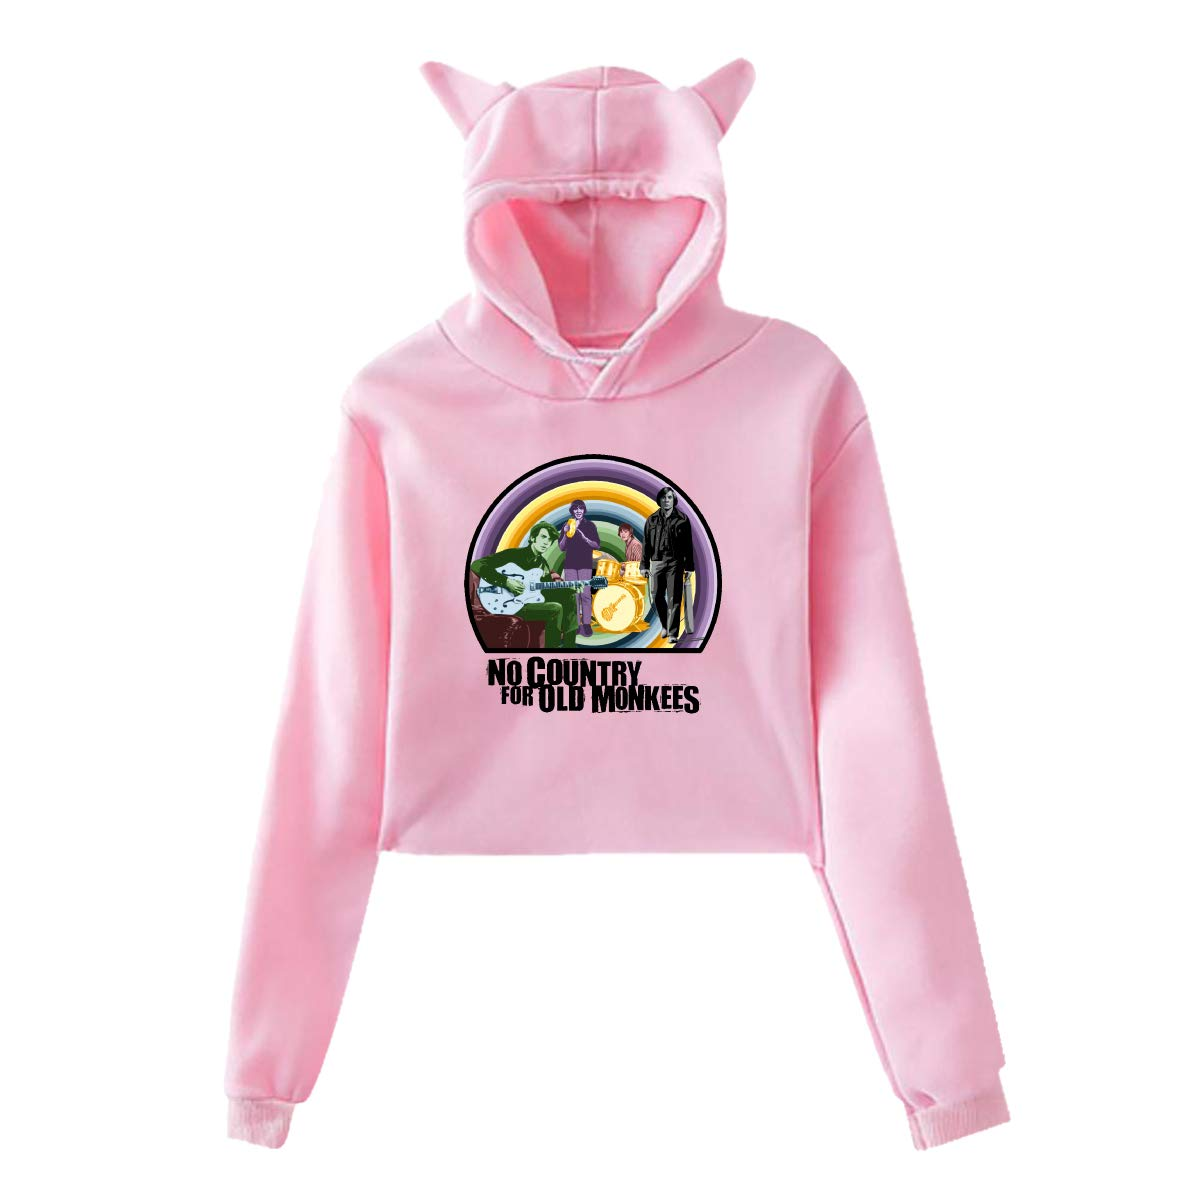 The MonkeesWomens Long Sleeve Cute Cat Ear Pullover Hoodie